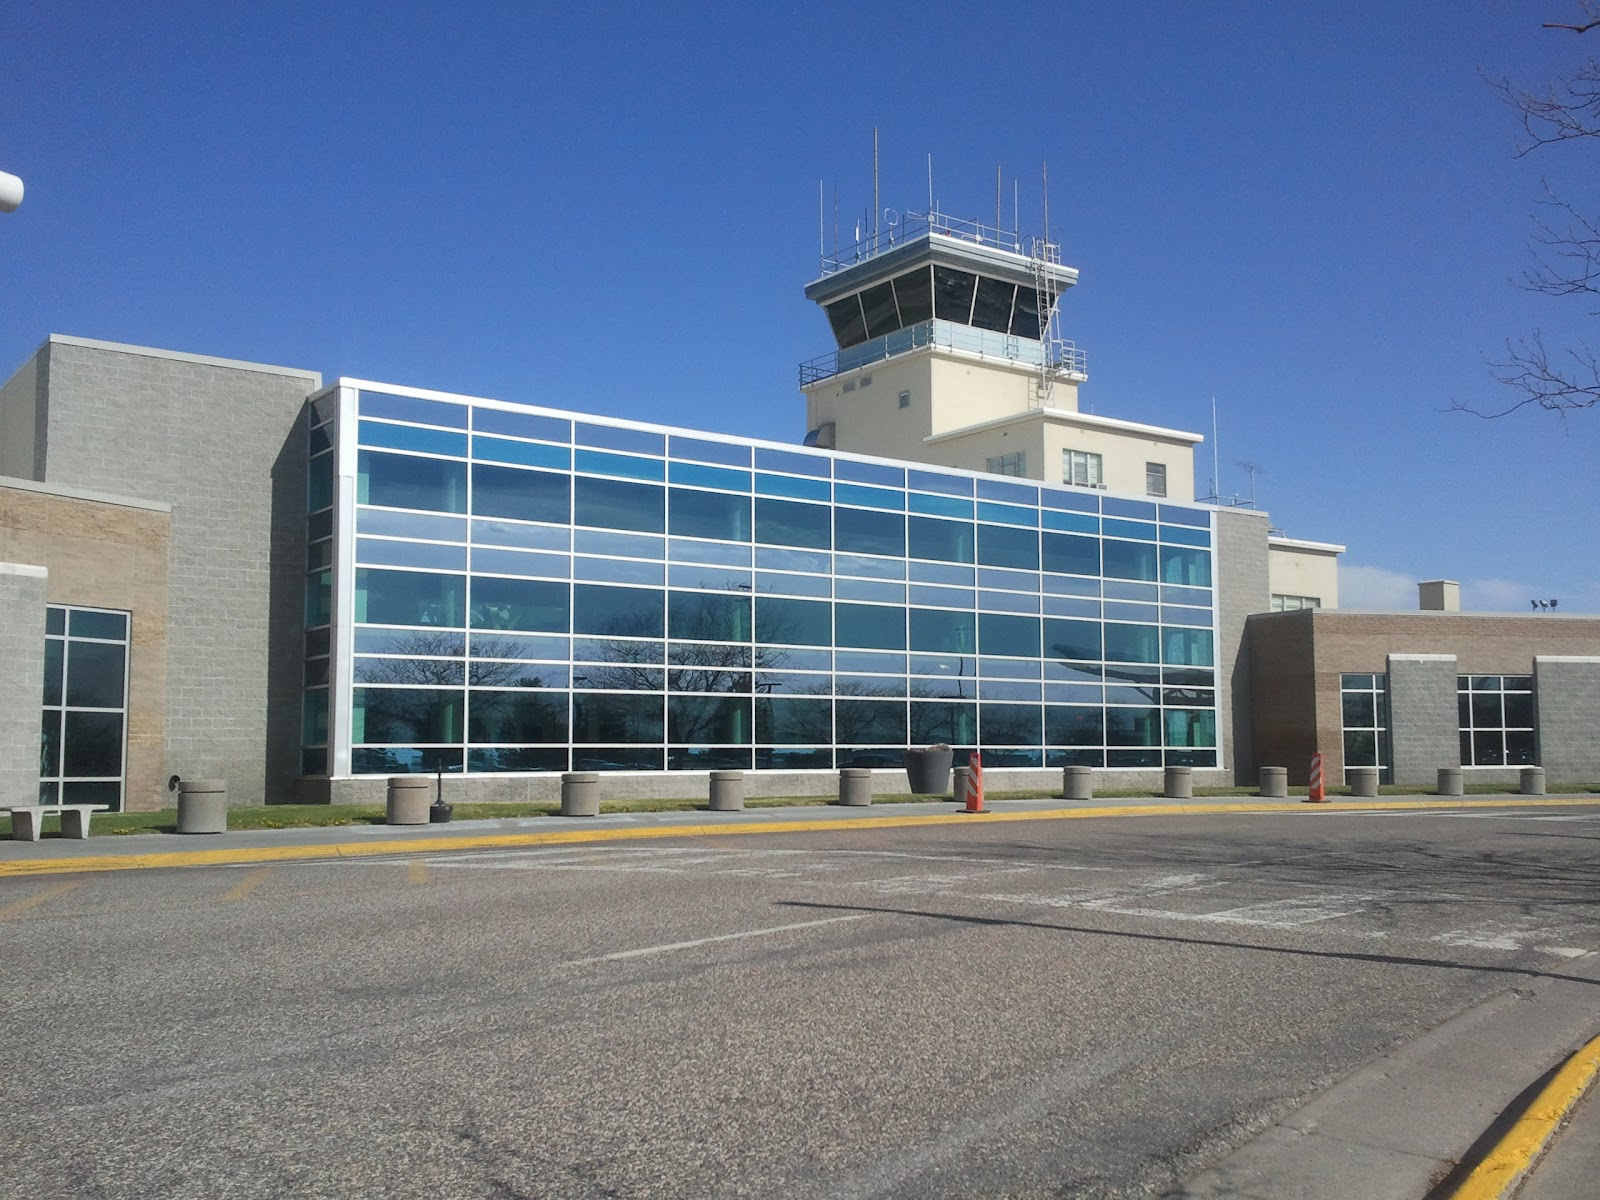 Plans filed for $2.7 million remodeling at Idaho Falls Regional Airport